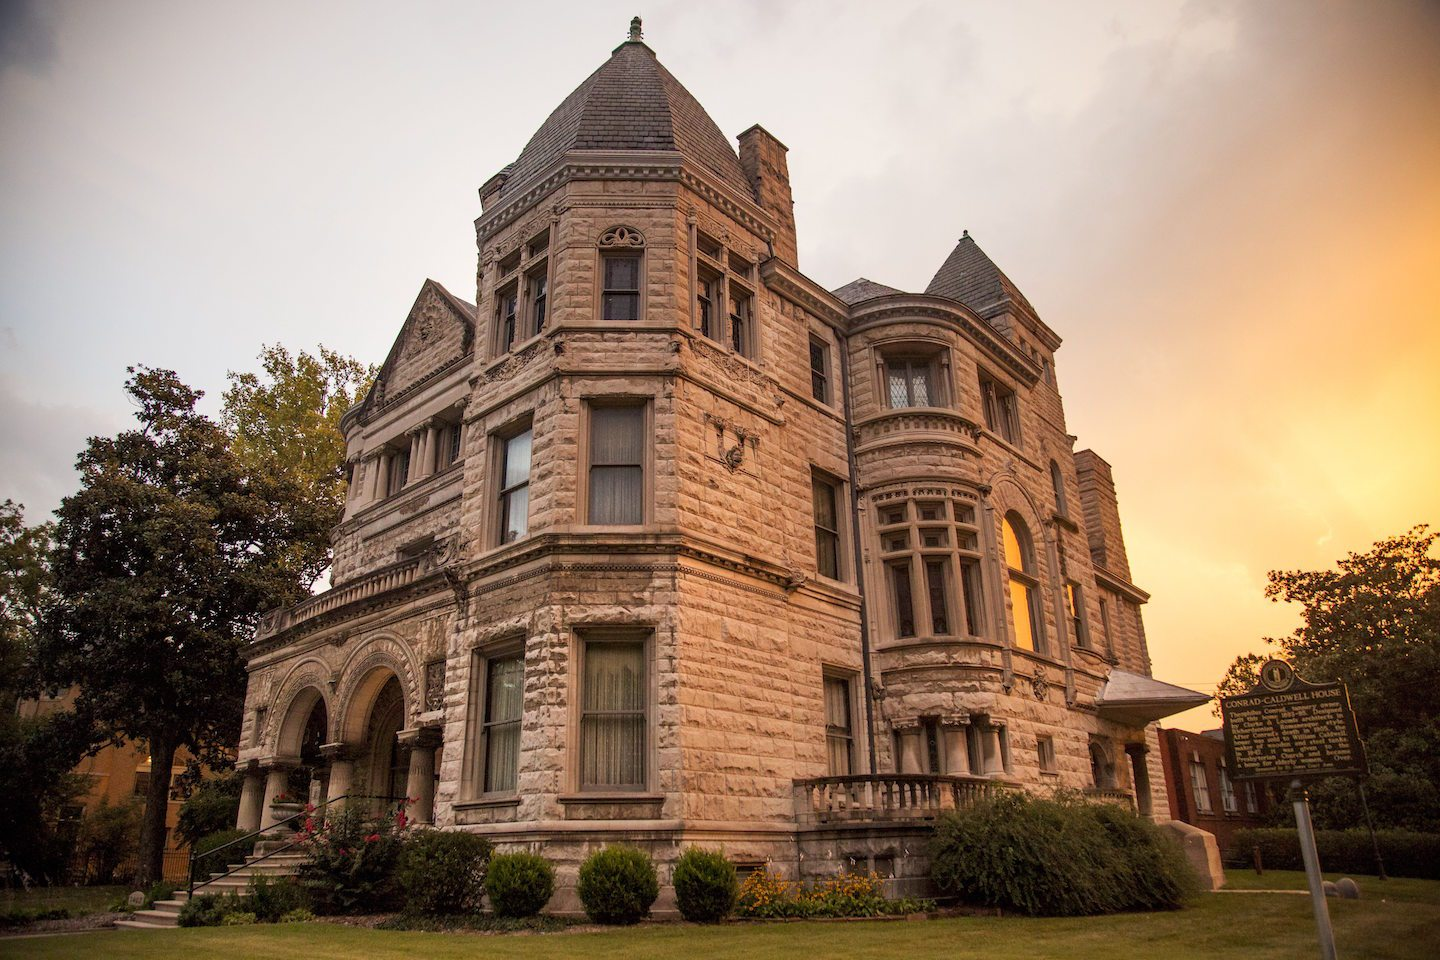 The Conrad-Caldwell House (image from official website)